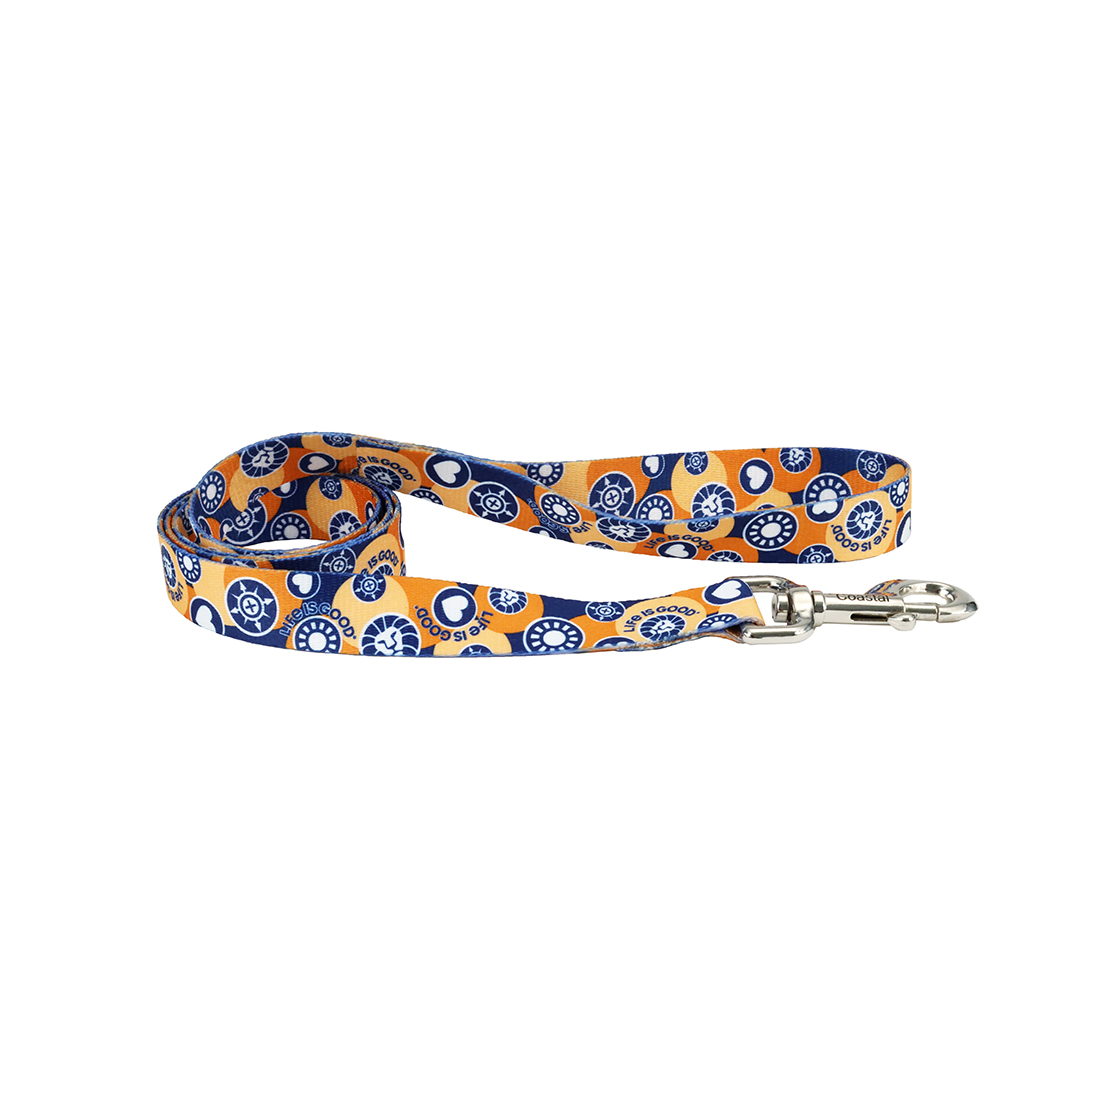 Life is Good Styles Dog Leash